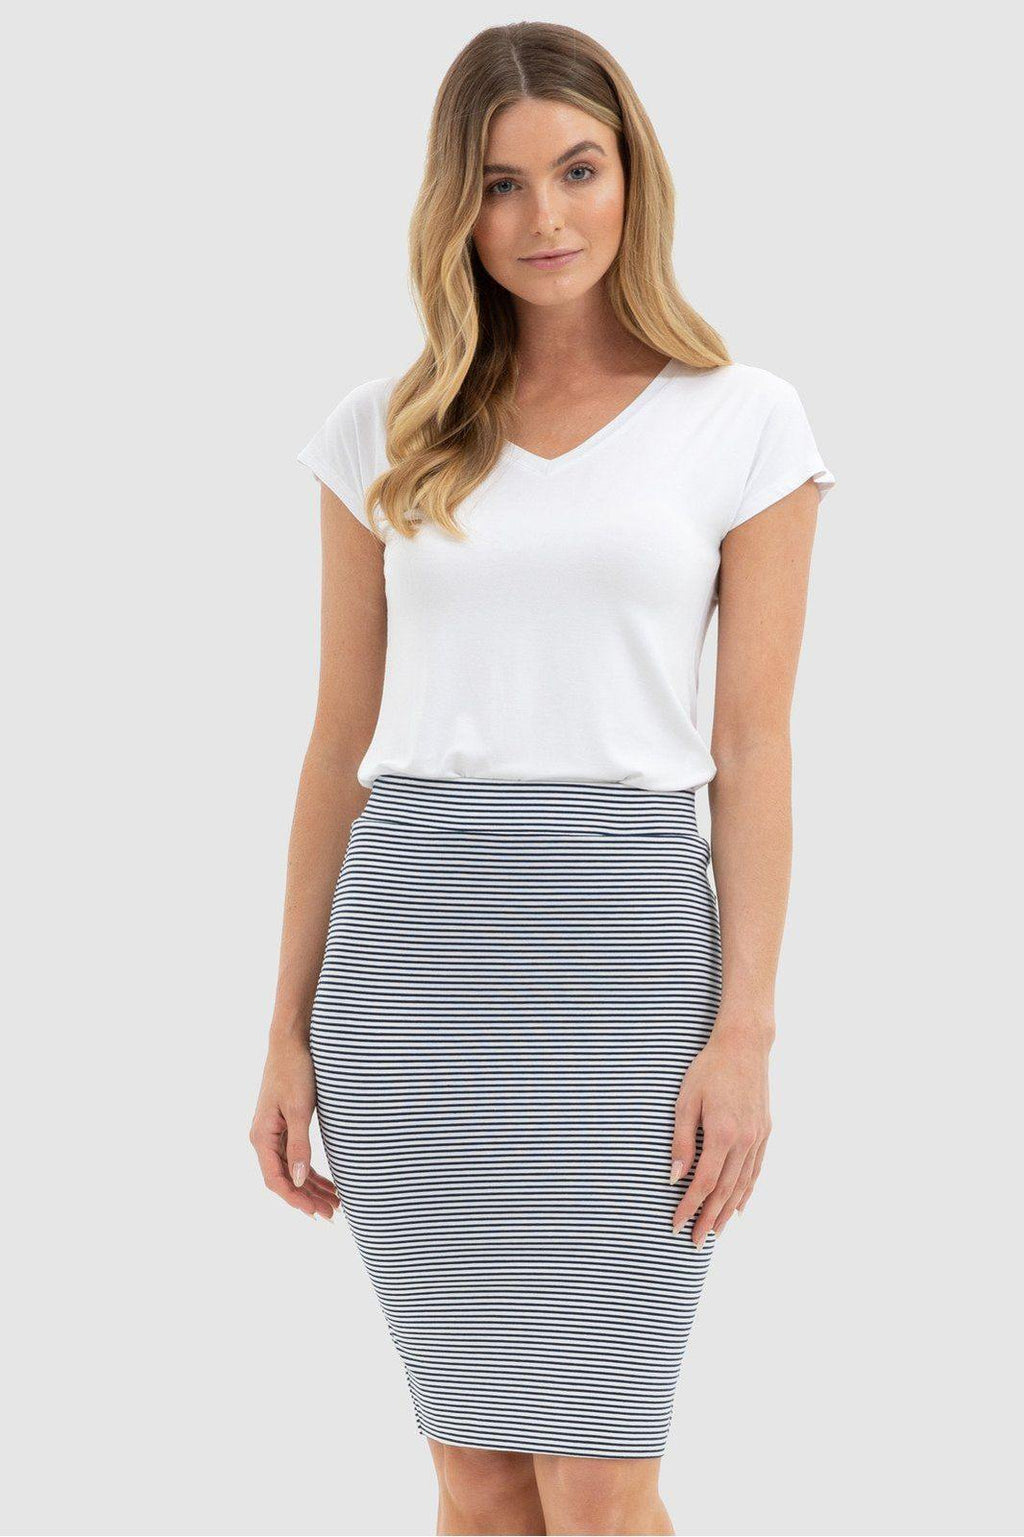 Bamboo Body Double Layer Tube Skirt - White & Navy Stripe - Weekends